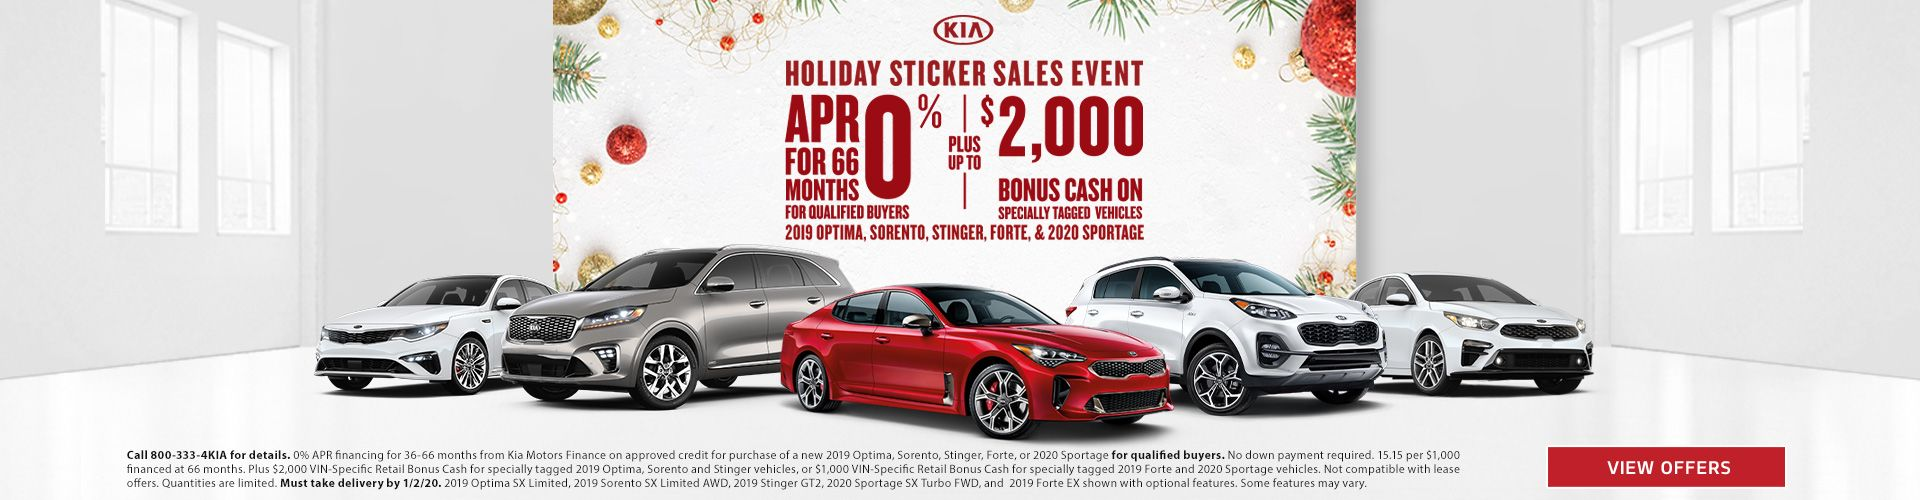 Airport Kia Holiday Sticker Sales Event Ad